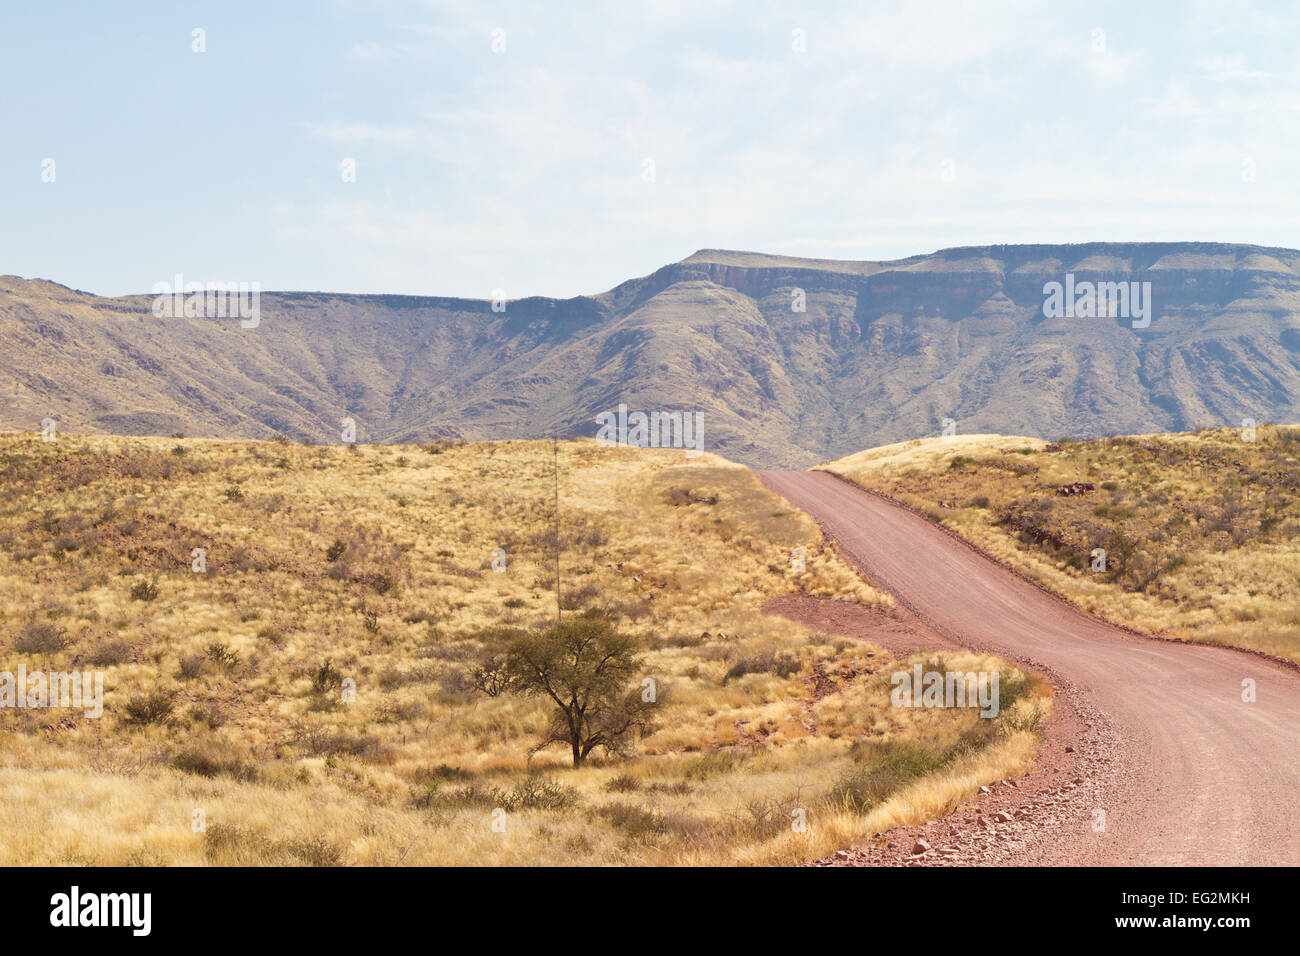 Tsaris Pass, Namibia - Stock Image